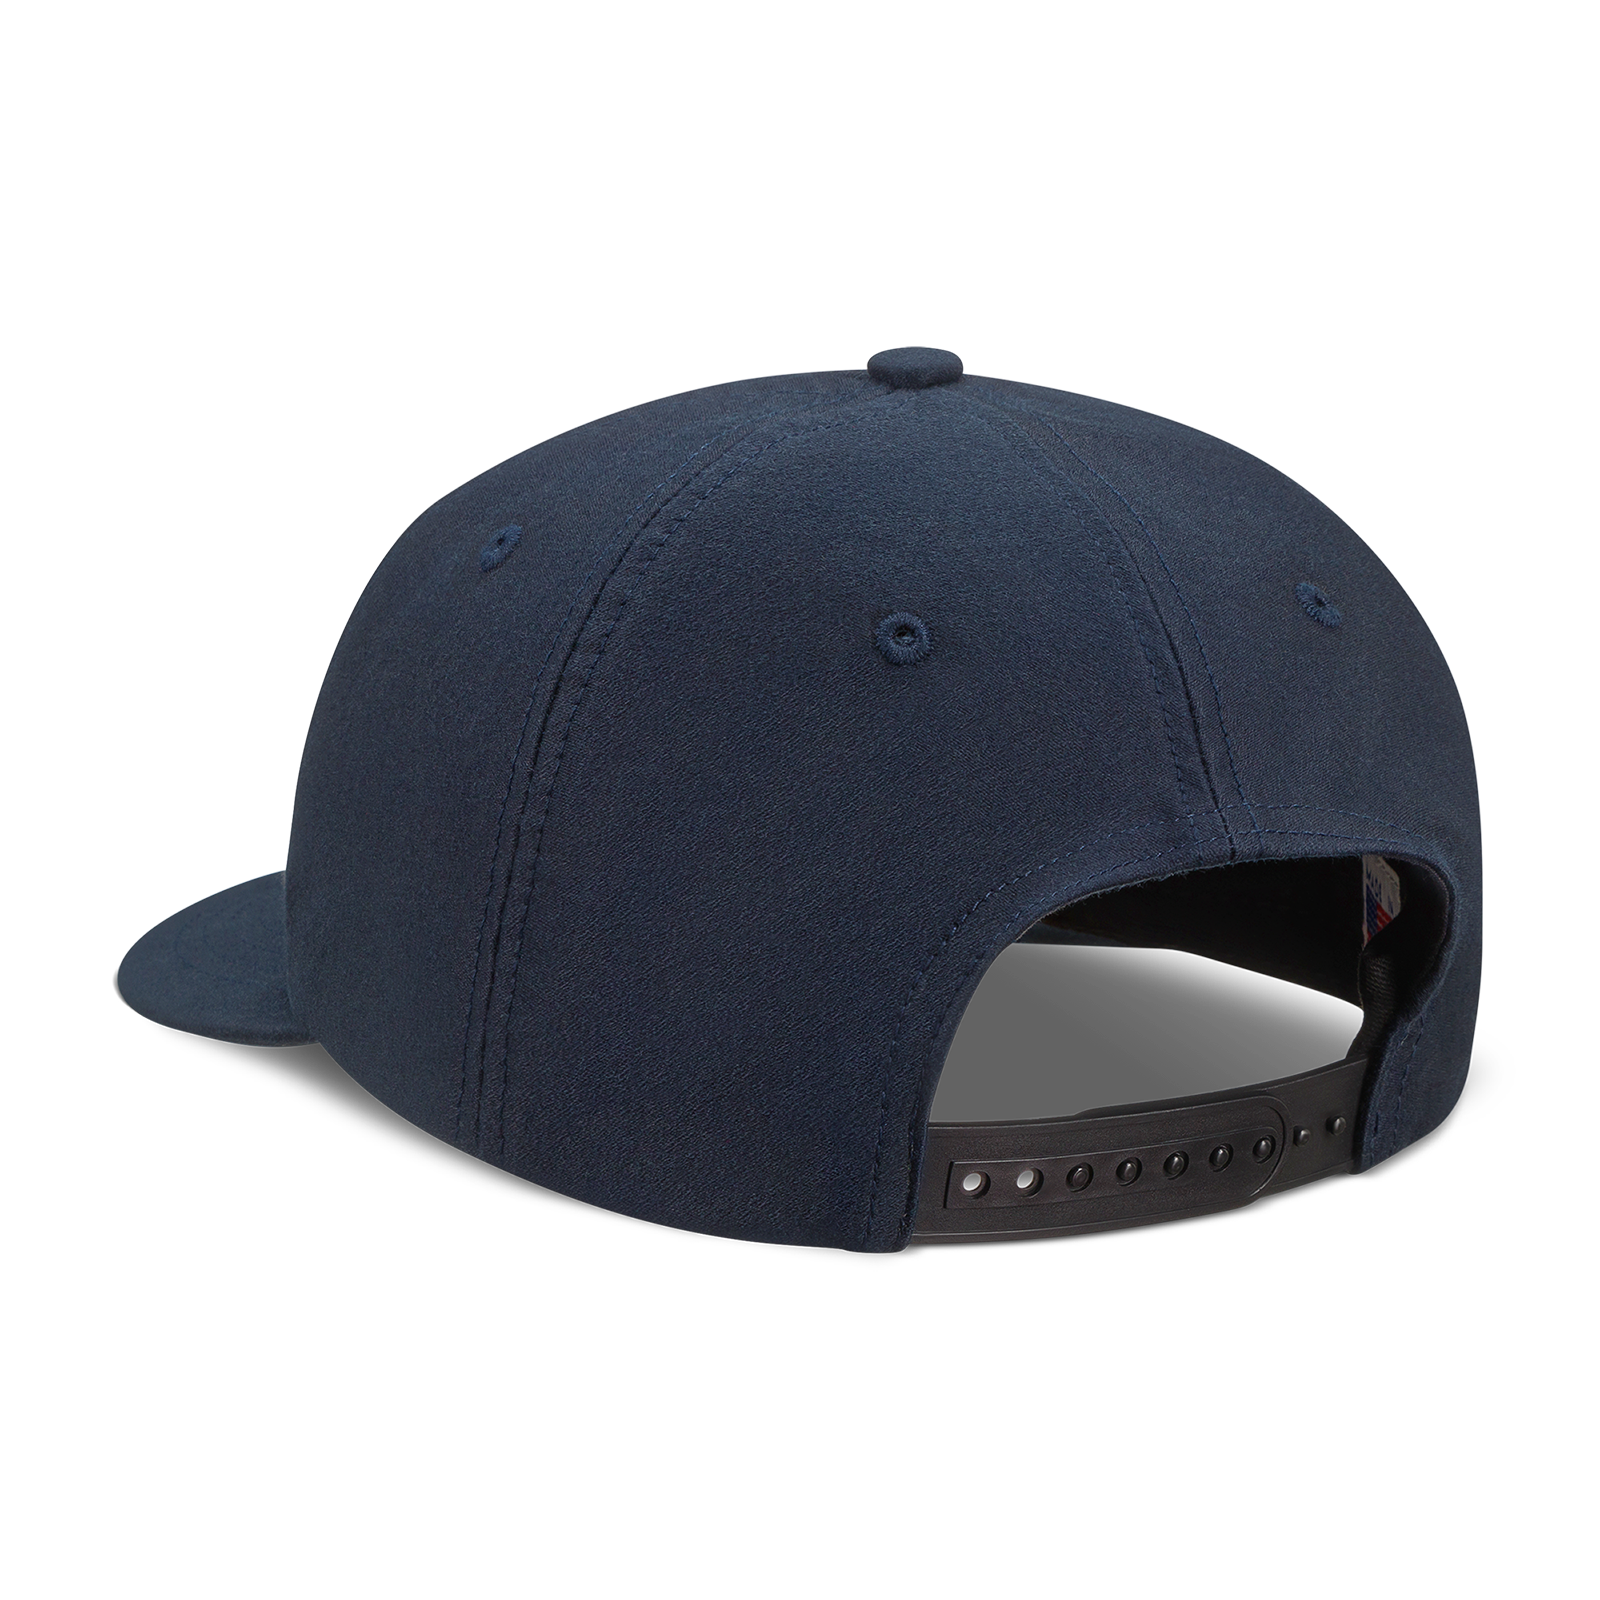 Cap product photography